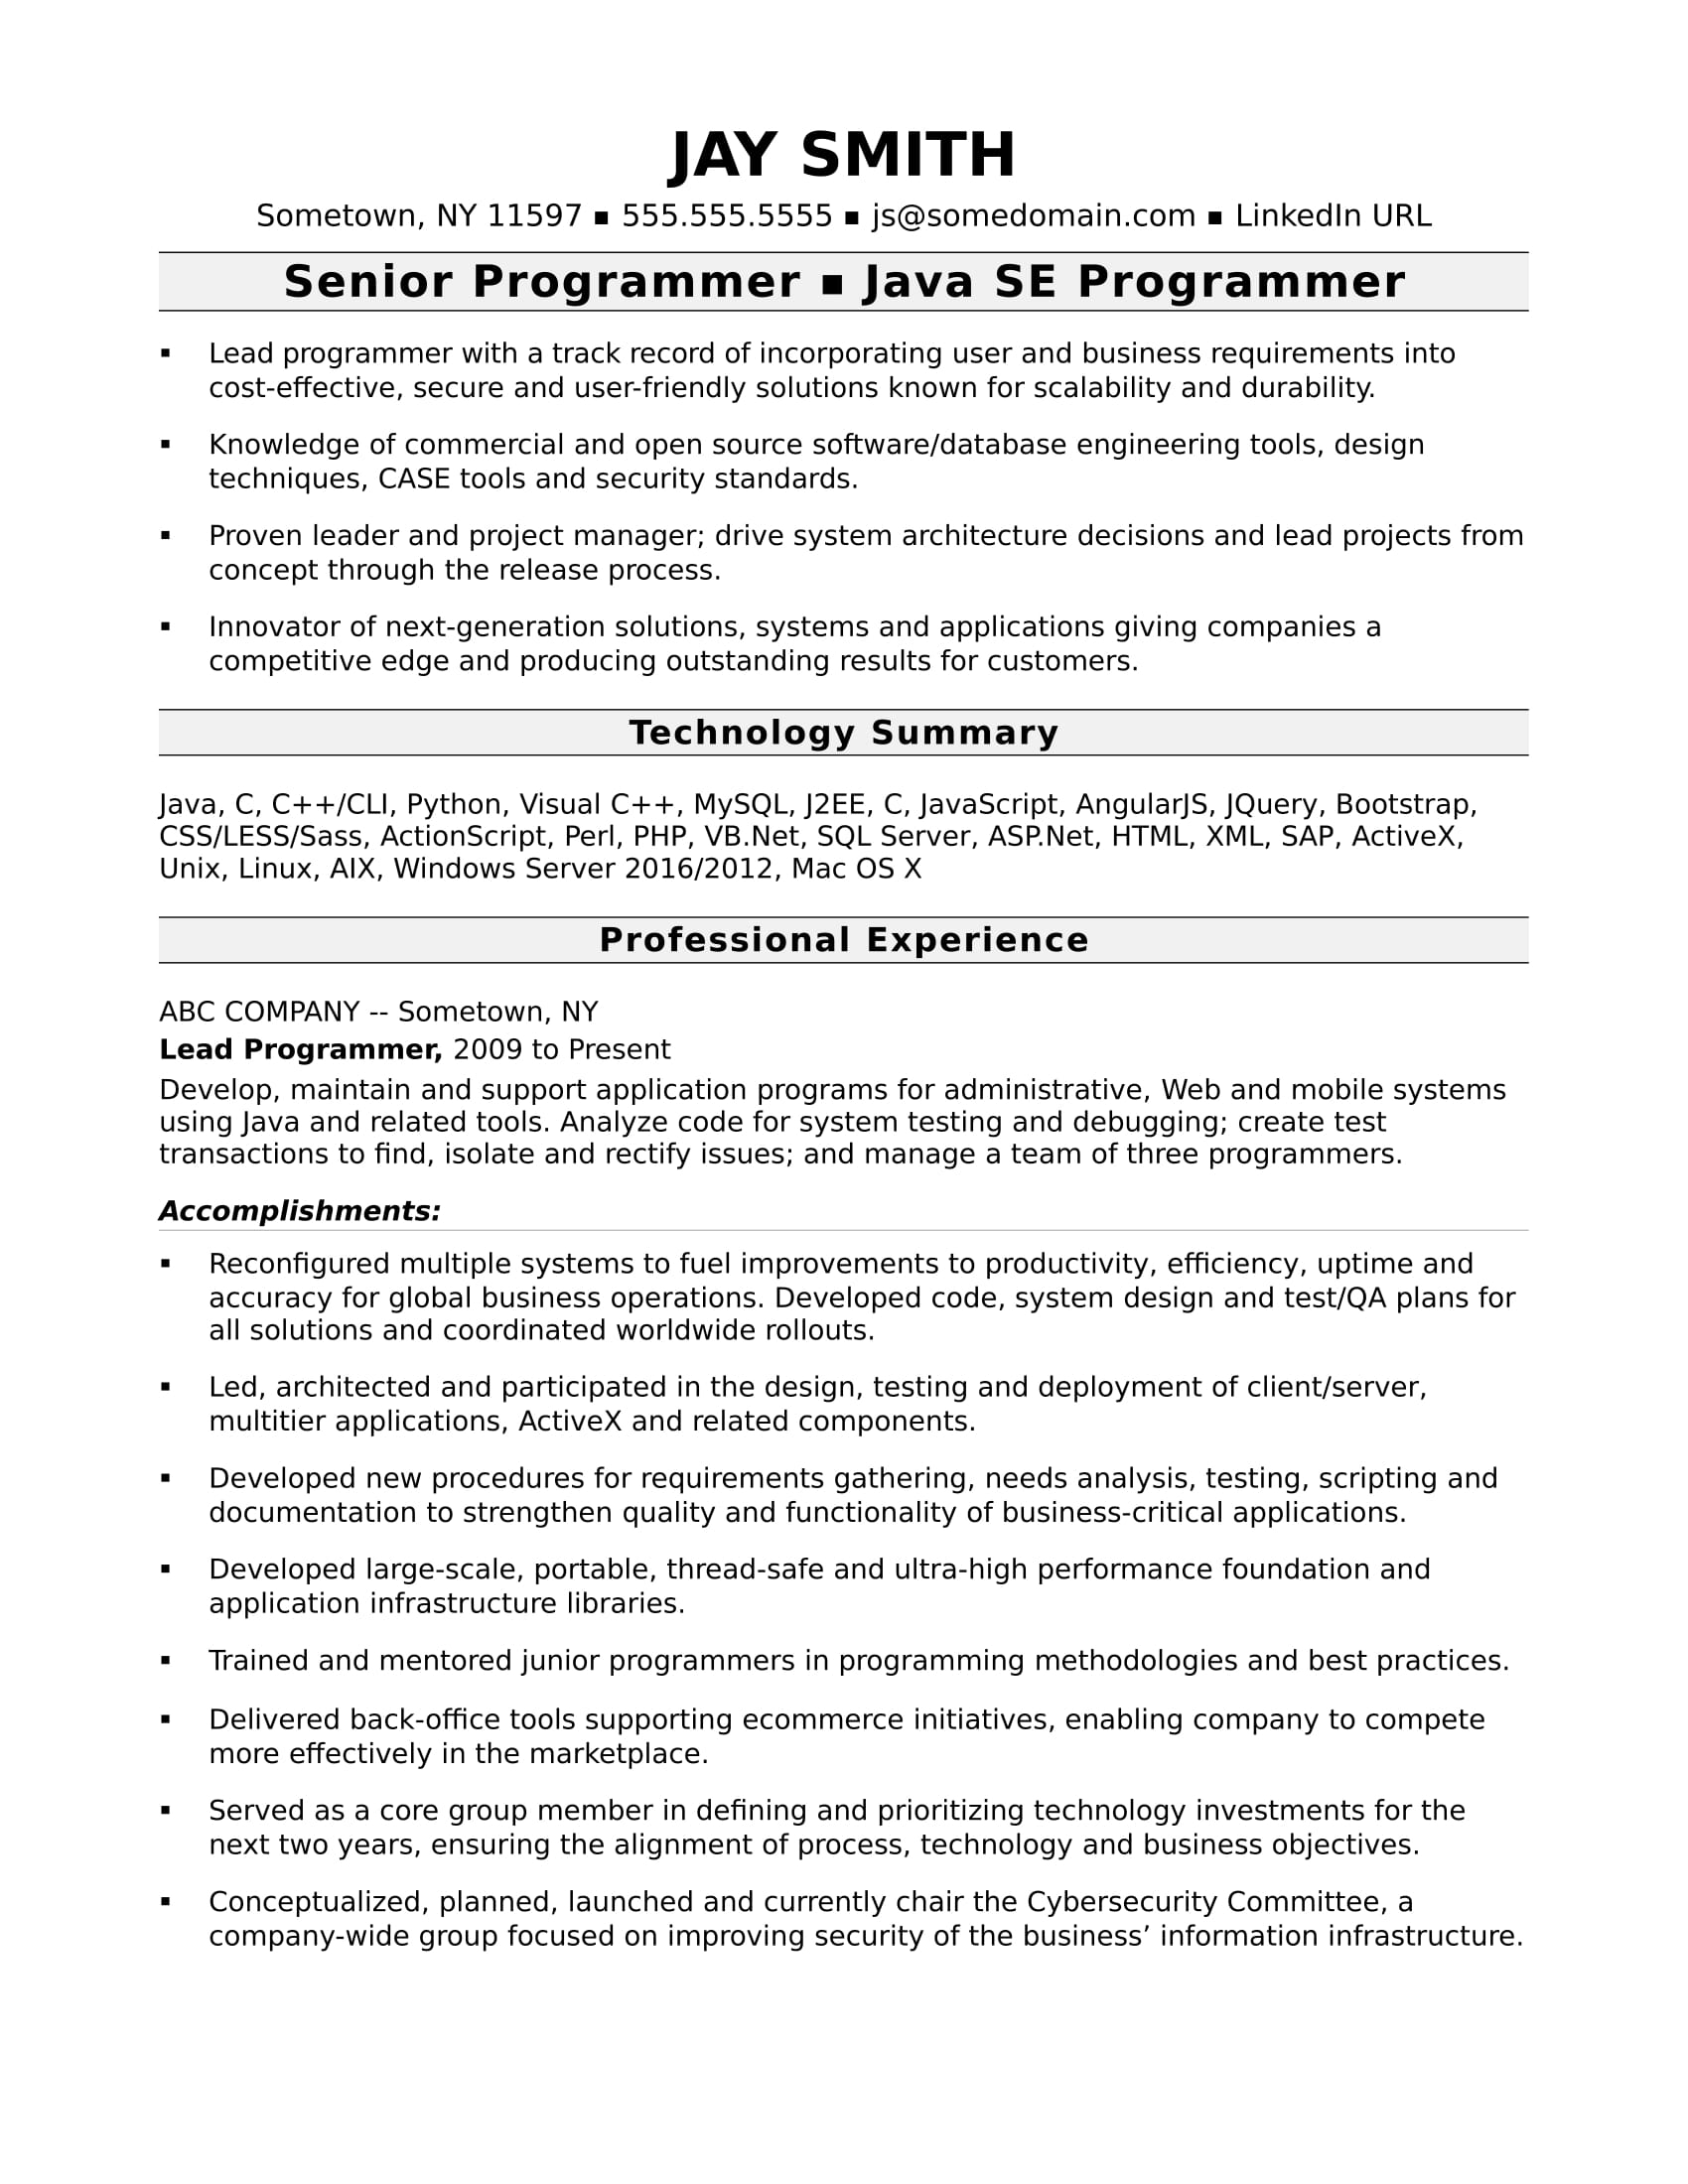 sample resume for an experienced computer programmer - Java Sample Resume